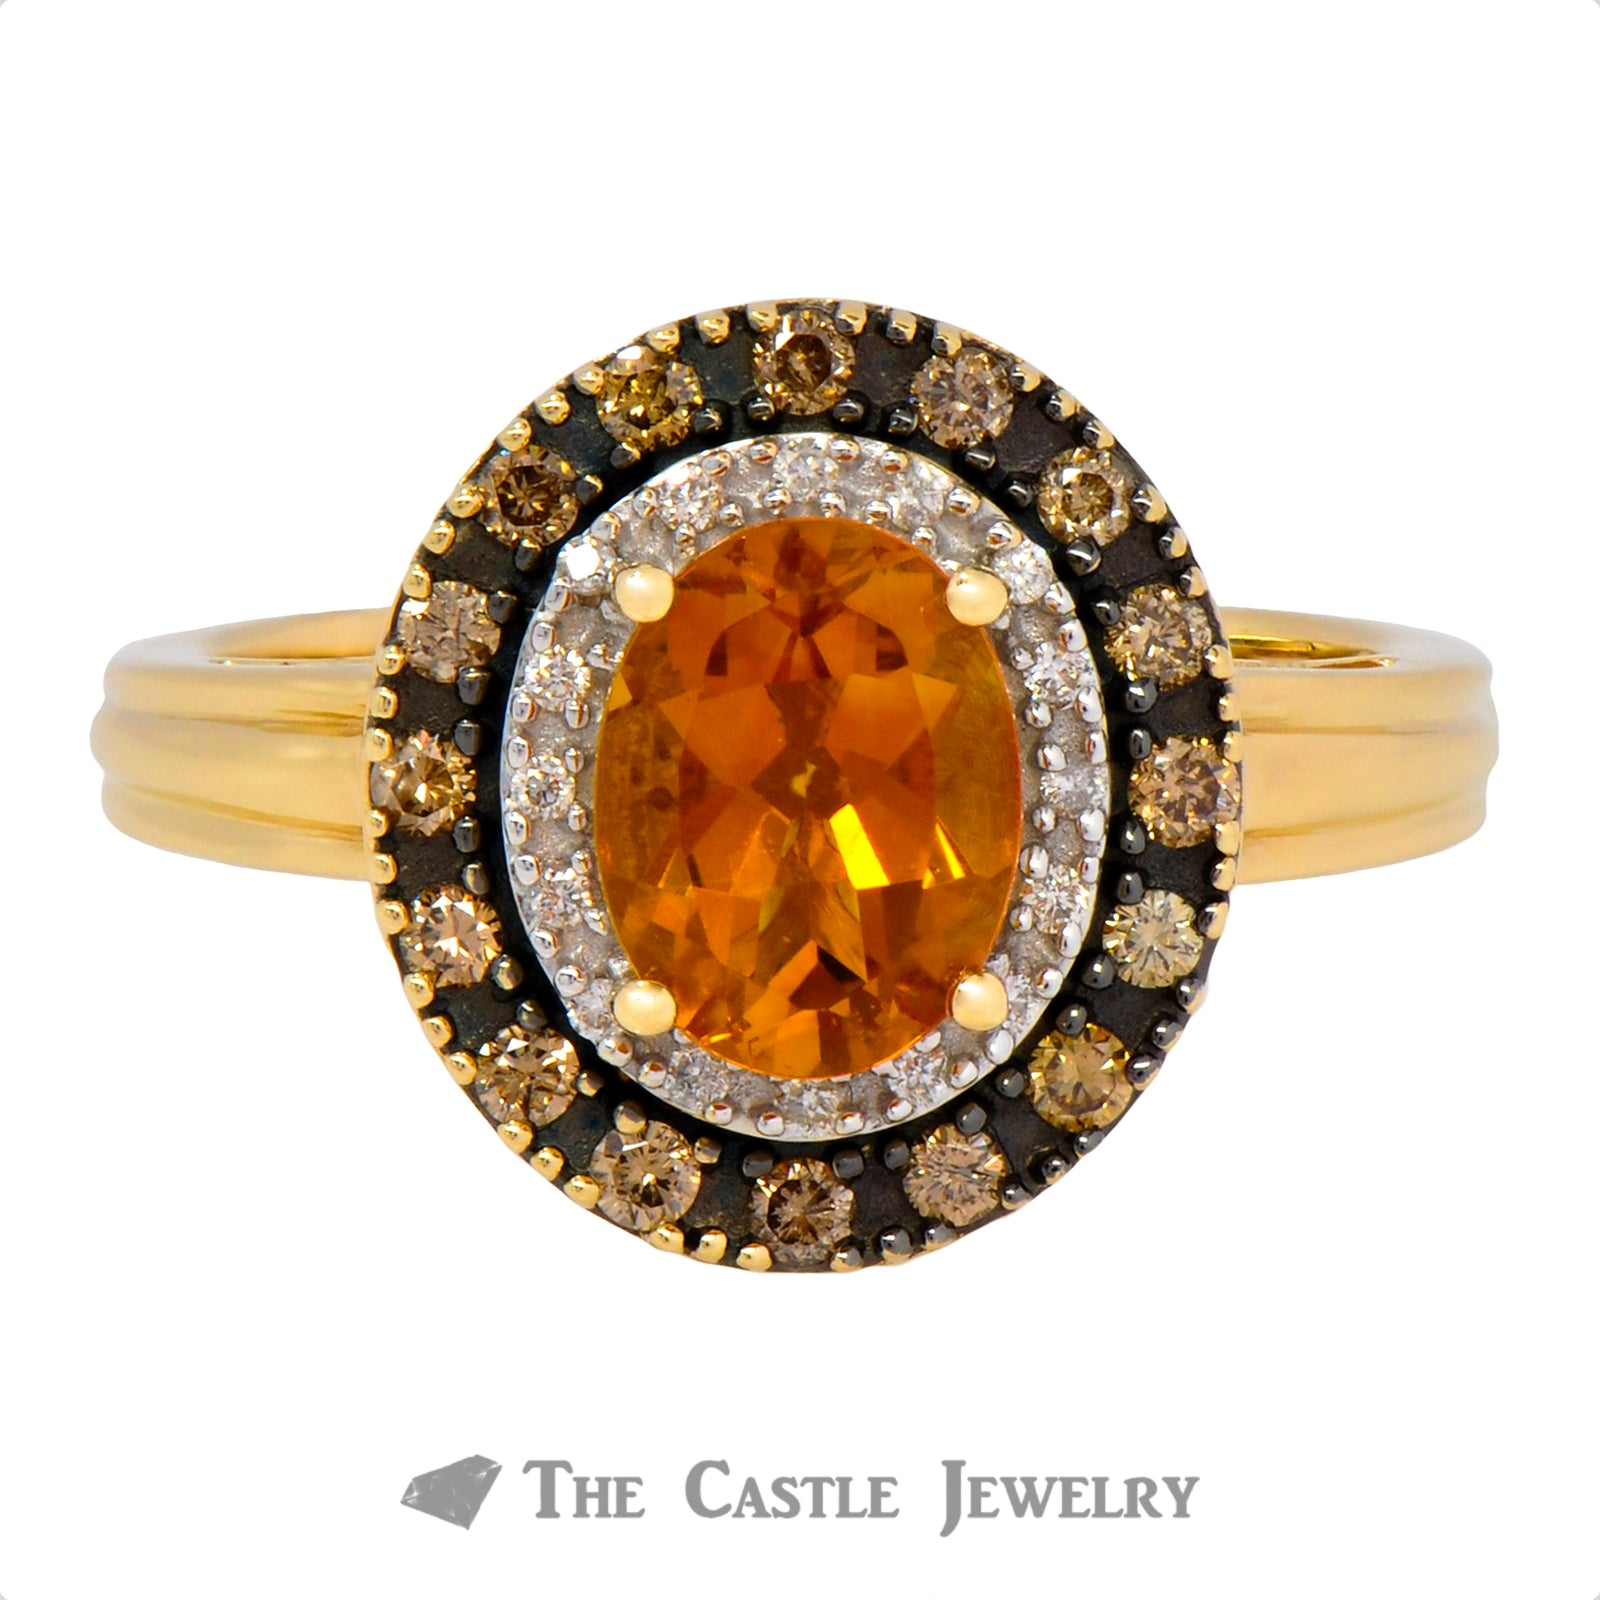 Oval Citrine Double Halo Ring Crafted in 14K Yellow Gold